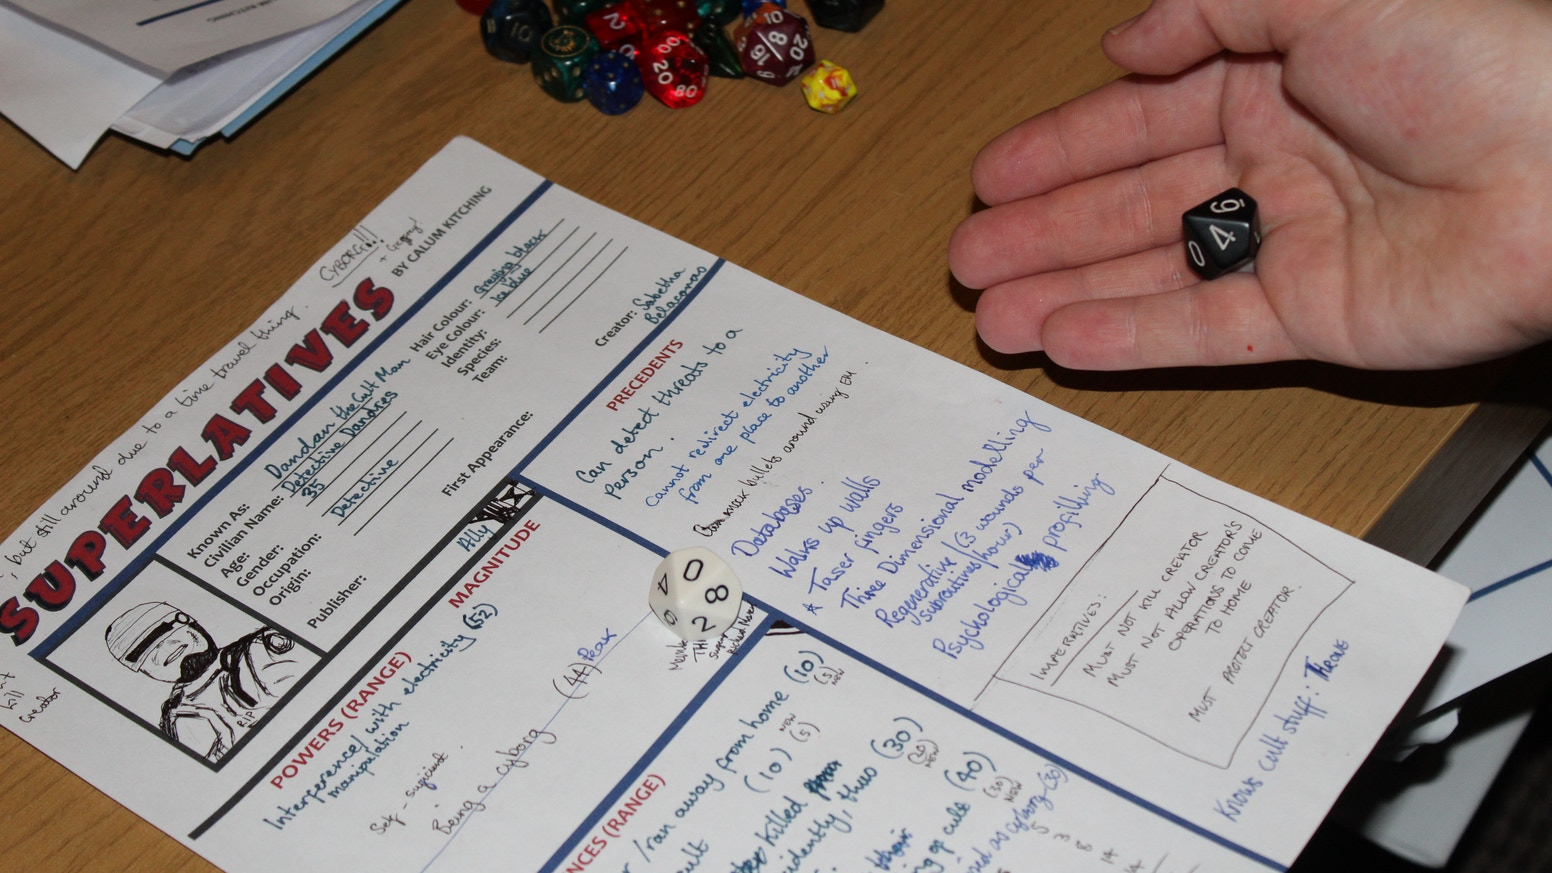 Superlatives! A tabletop roleplaying game of superhuman action and capabilities. Now found on Drive Thru RPG: https://www.drivethrurpg.com/browse.php?author=Calum%20Kitching& Wordpress: https://superlatives30882206.wordpress.com/